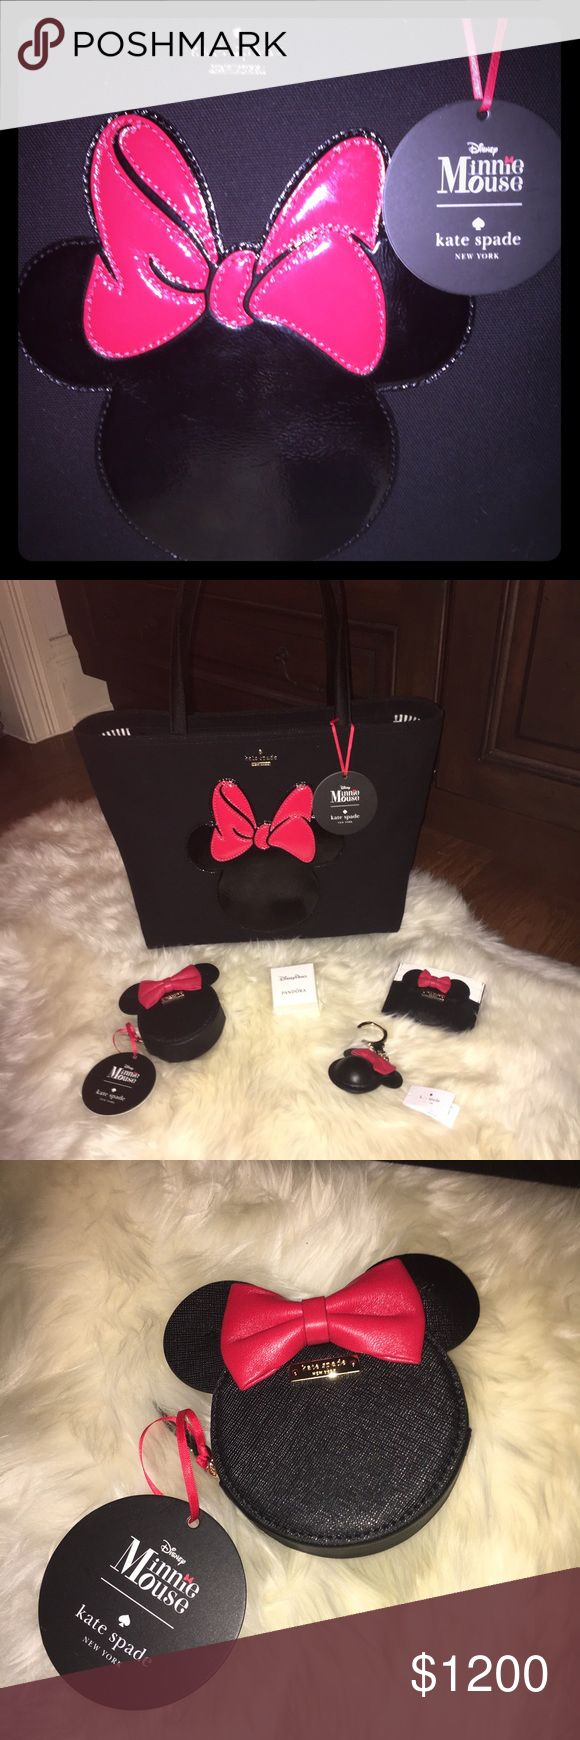 Kate Spade ♠️ Disney Curated Collection W/Pandora ✨Price Break! Save $50! ✨It's here! All Authentic and Exclusively for you!✨Kate Spade, Pandora and Disney collaboration Authentic and Exclusively Curated for you, by me! Limited in stores and only available for purchase in person within Disney! All of these items are kept under lock and key. I hand selected these items different locations within Disney World. There is an added surprise...An adorable bow on the bottom of the tote!🎀See photo…